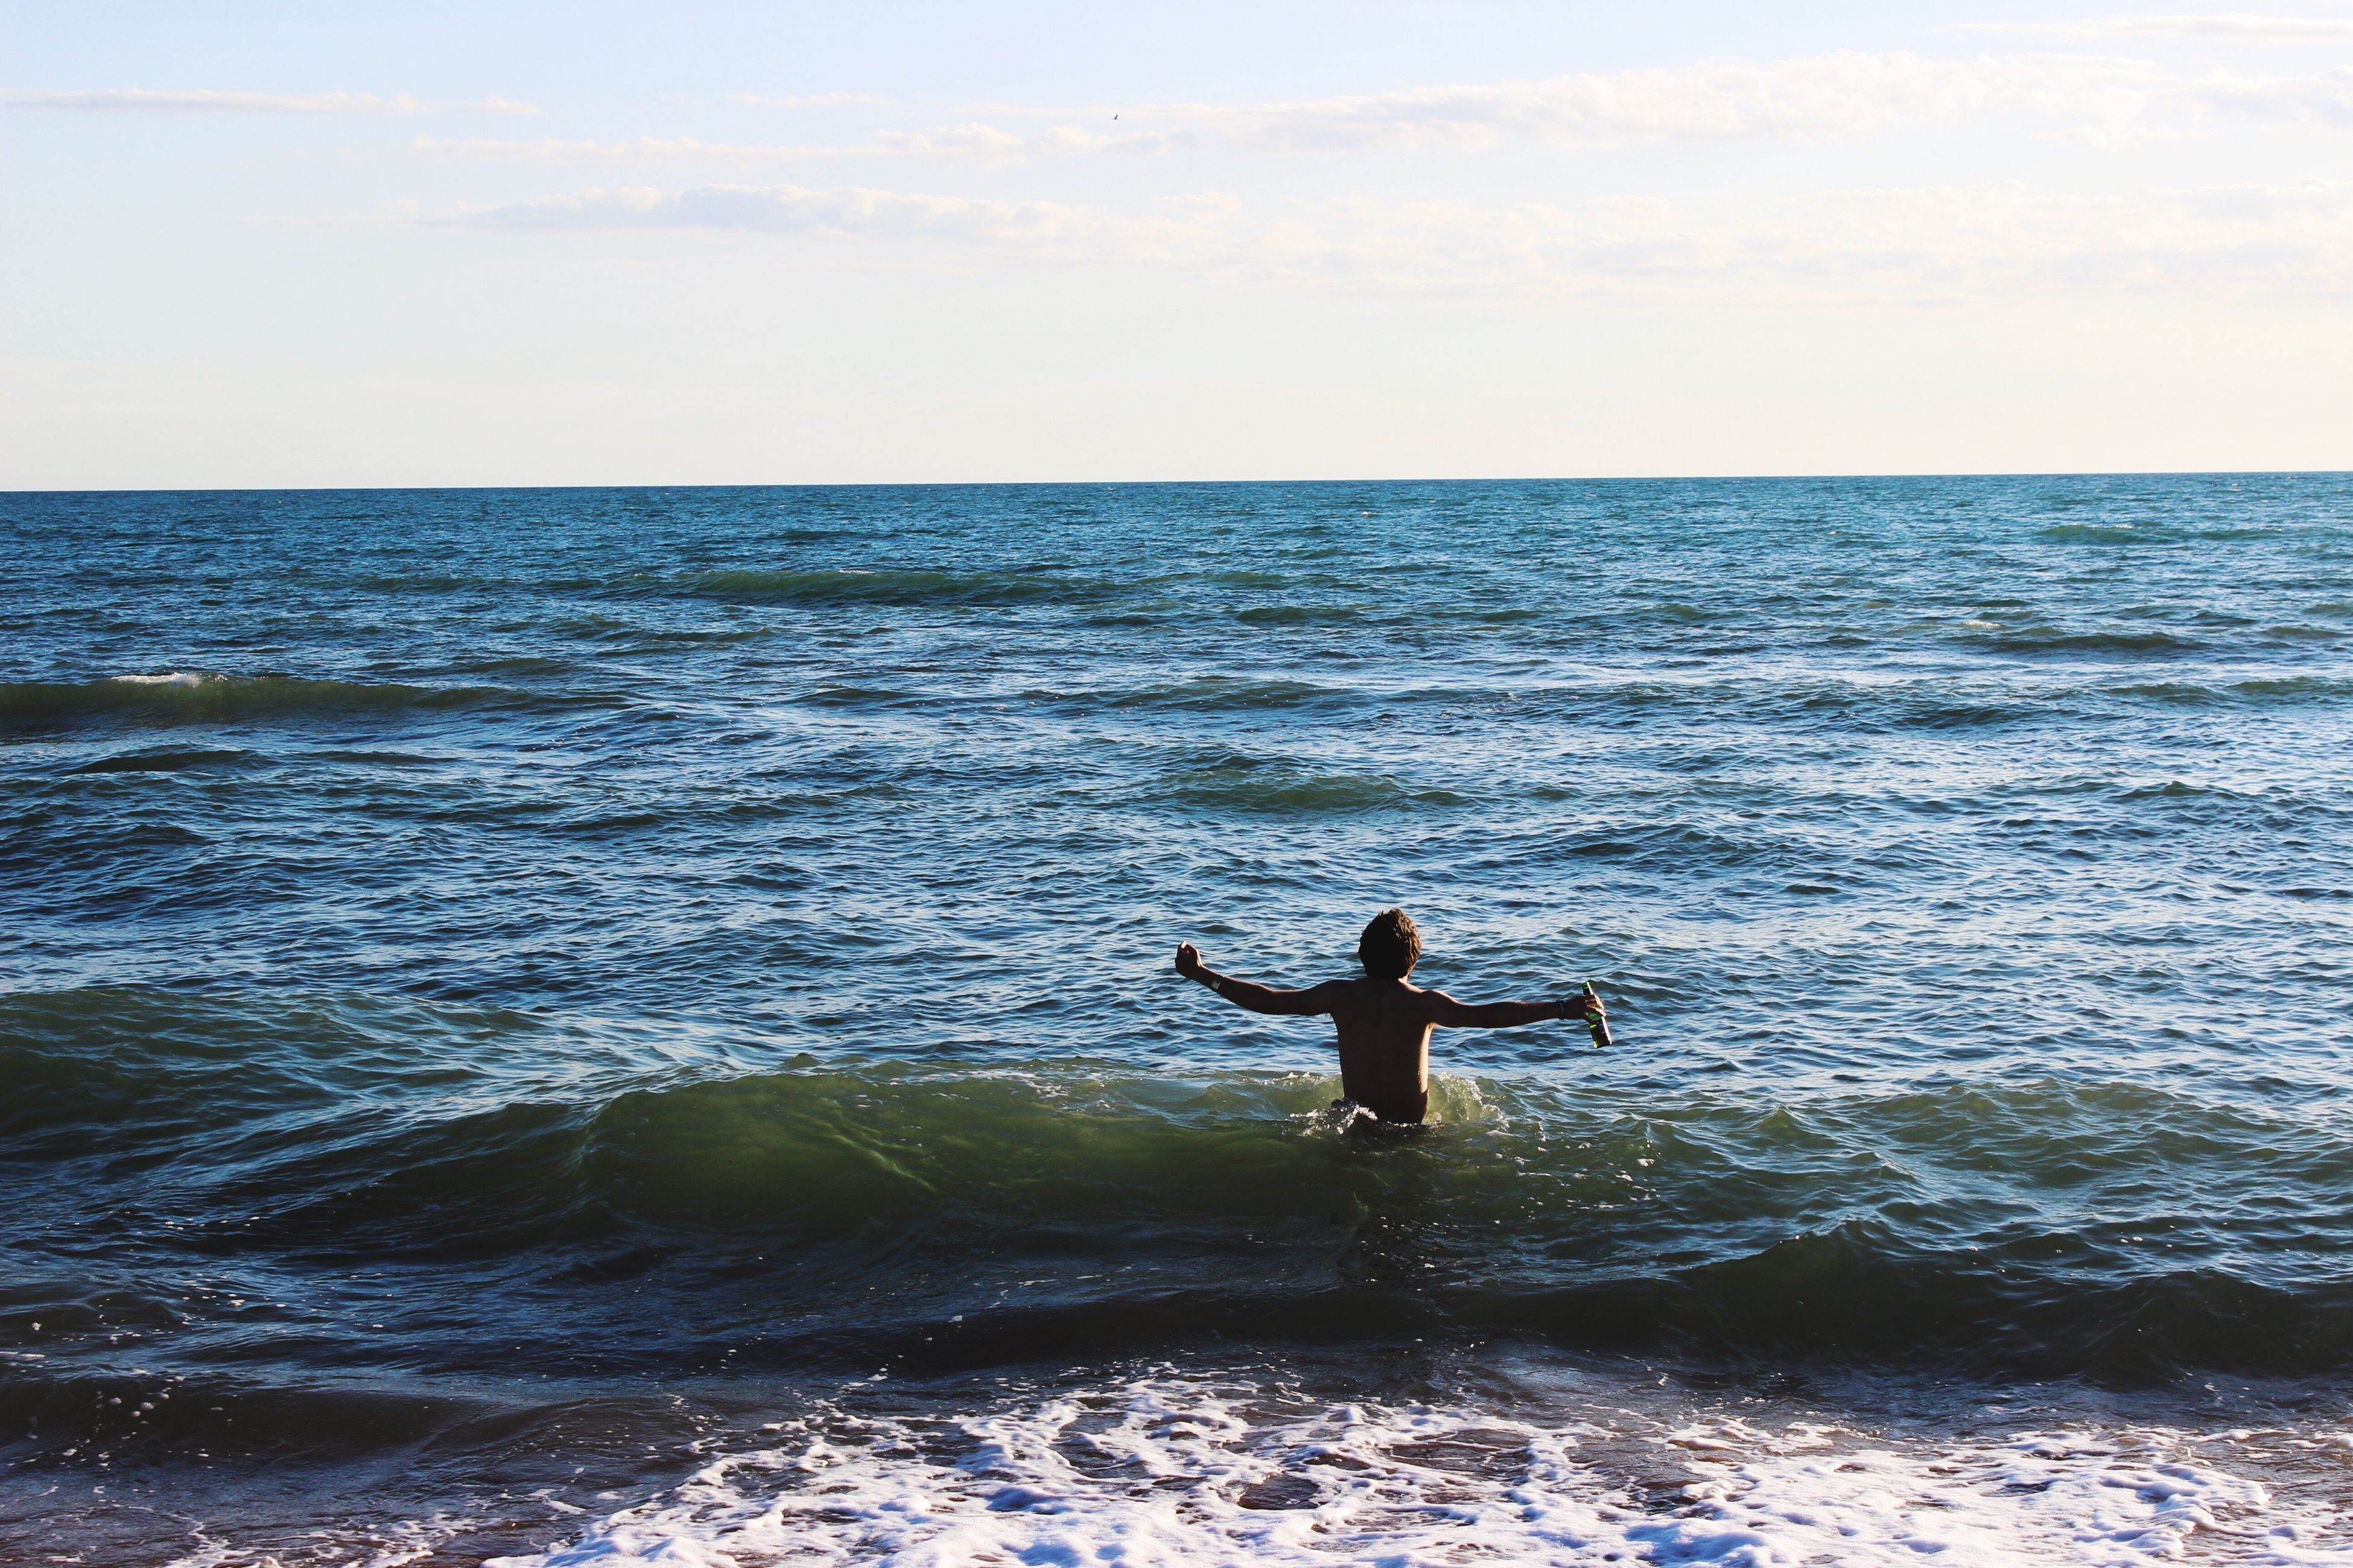 sea, water, real people, nature, horizon over water, sky, one person, scenics, outdoors, beauty in nature, men, full length, leisure activity, lifestyles, tranquil scene, tranquility, beach, day